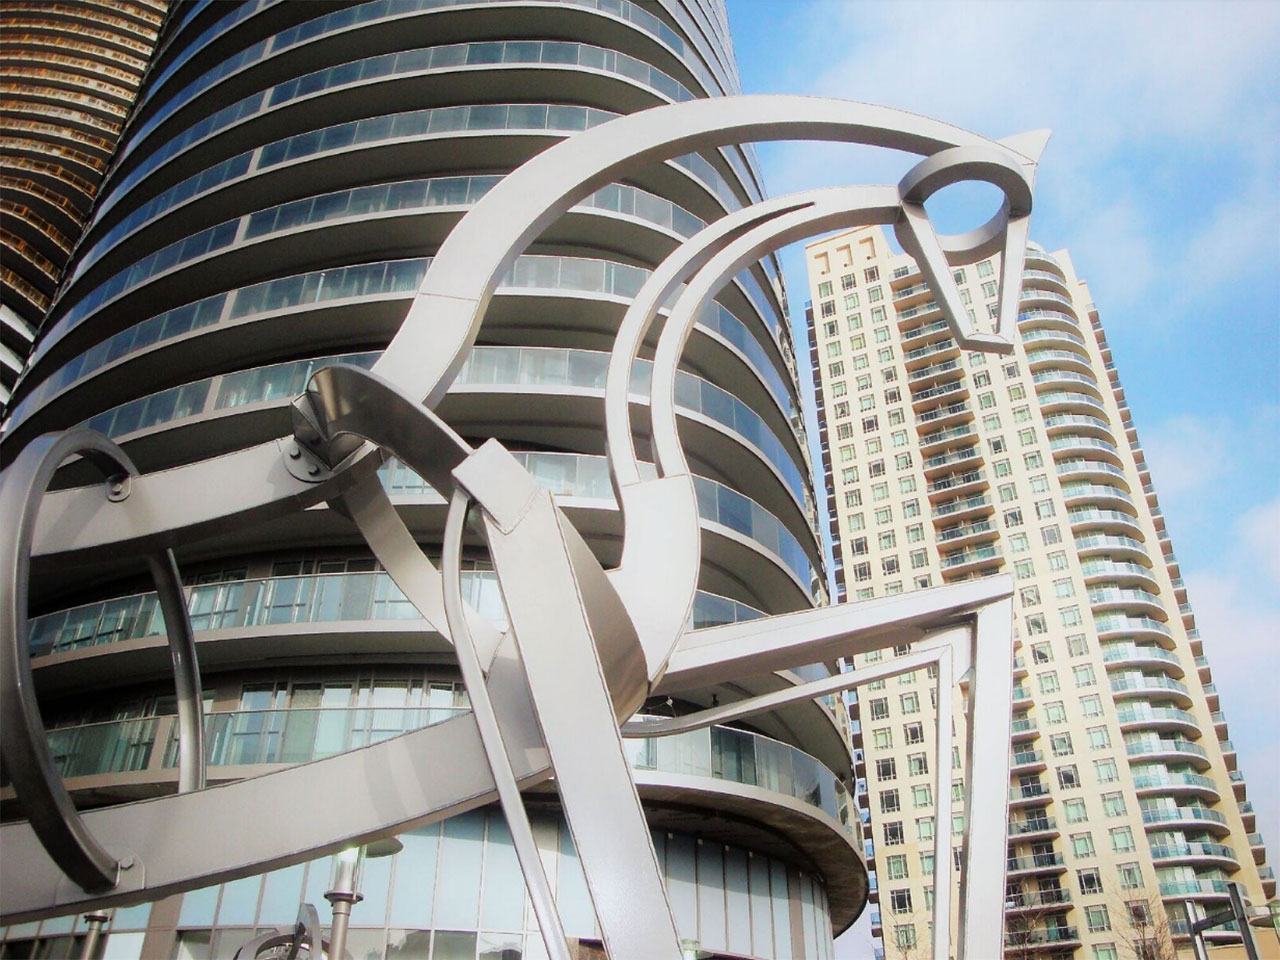 Absolute World Towers - Decorative Horses